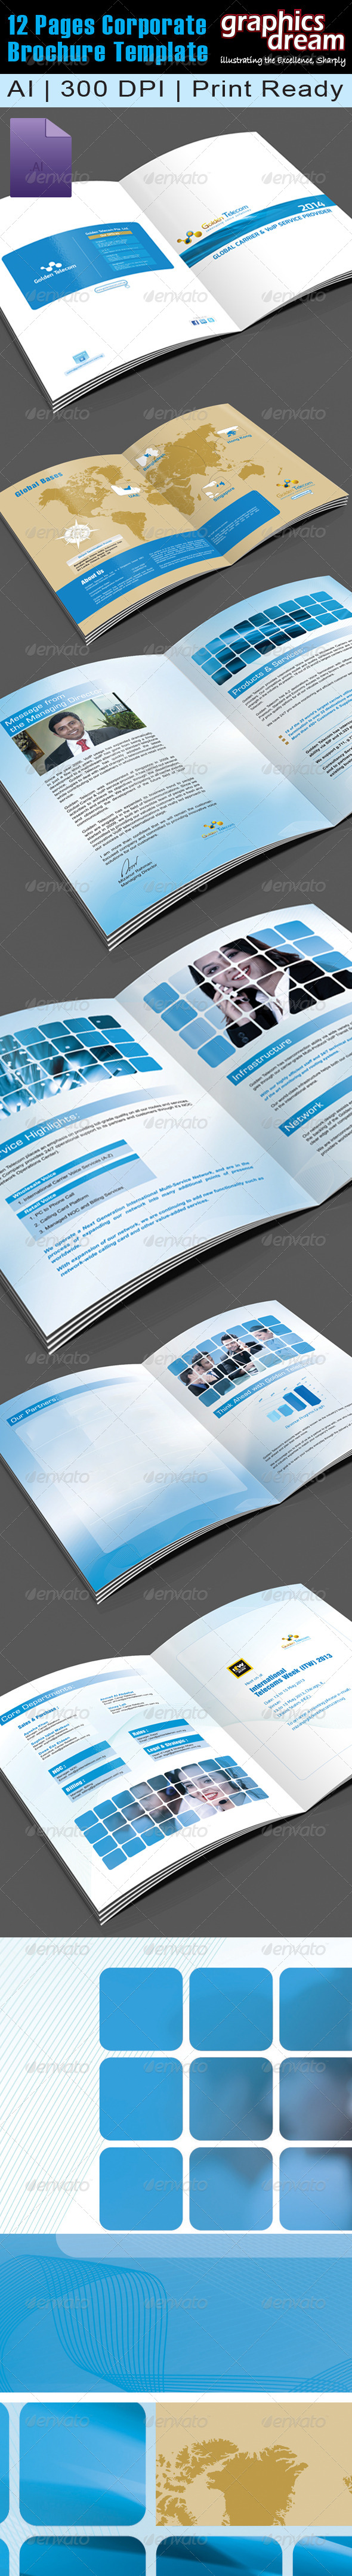 12 Pages Corporate Brochure 001 - Corporate Brochures